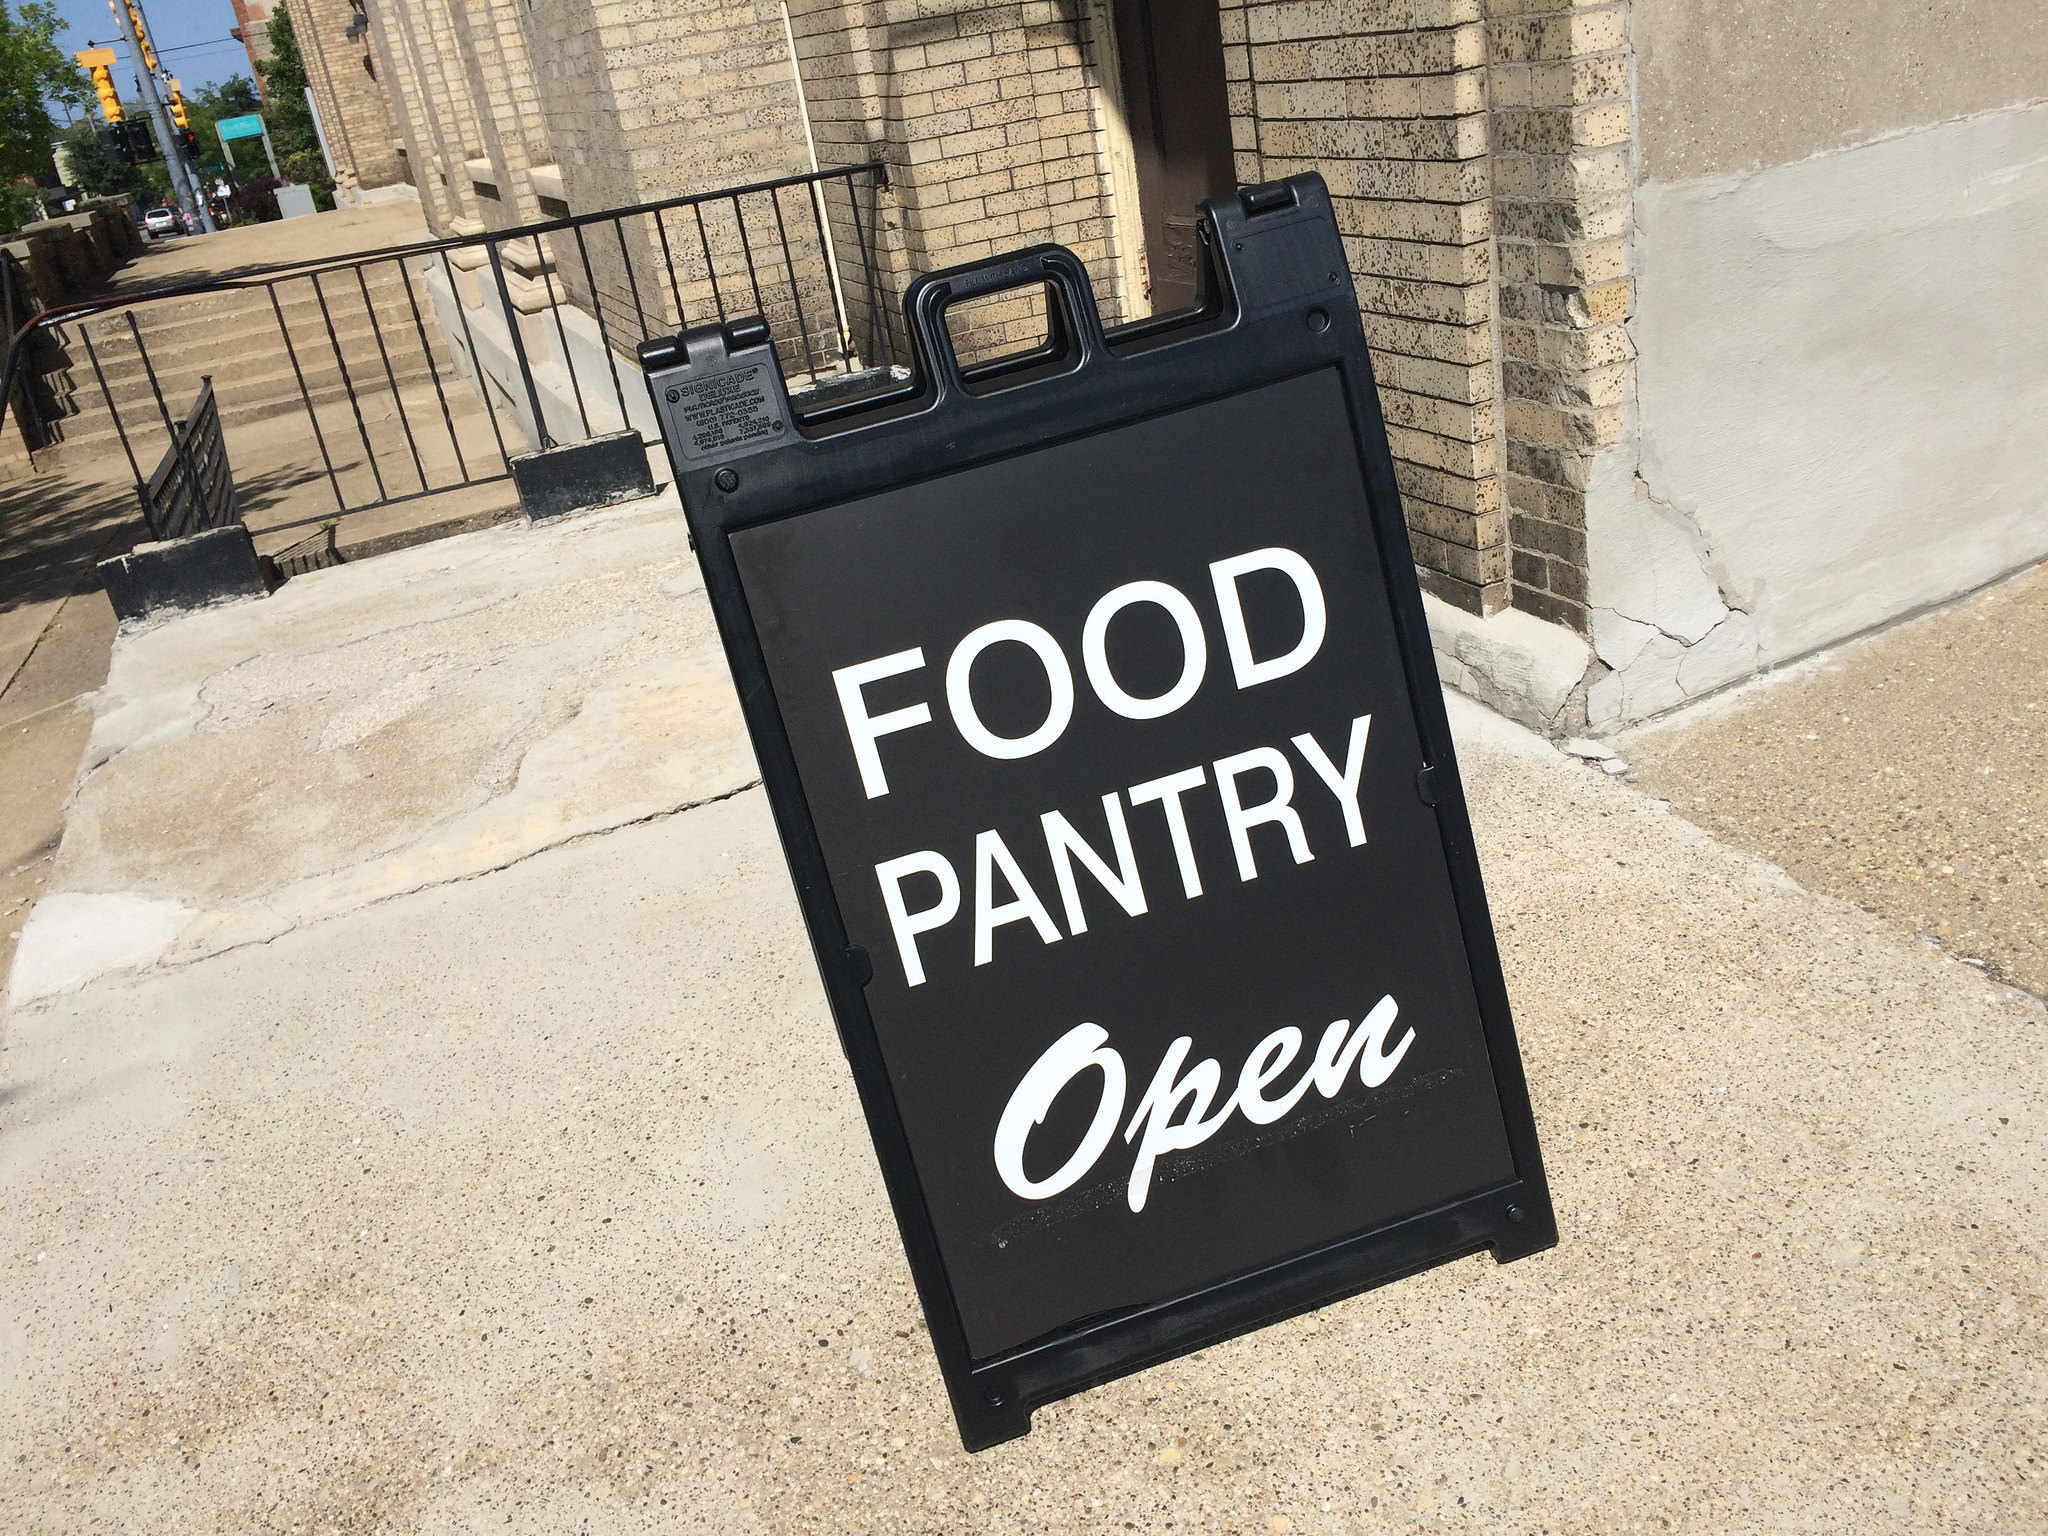 Food Pantry Open Church Grand Rapids Michigan - Photo by Steven Depolo (CC BY 2.0)